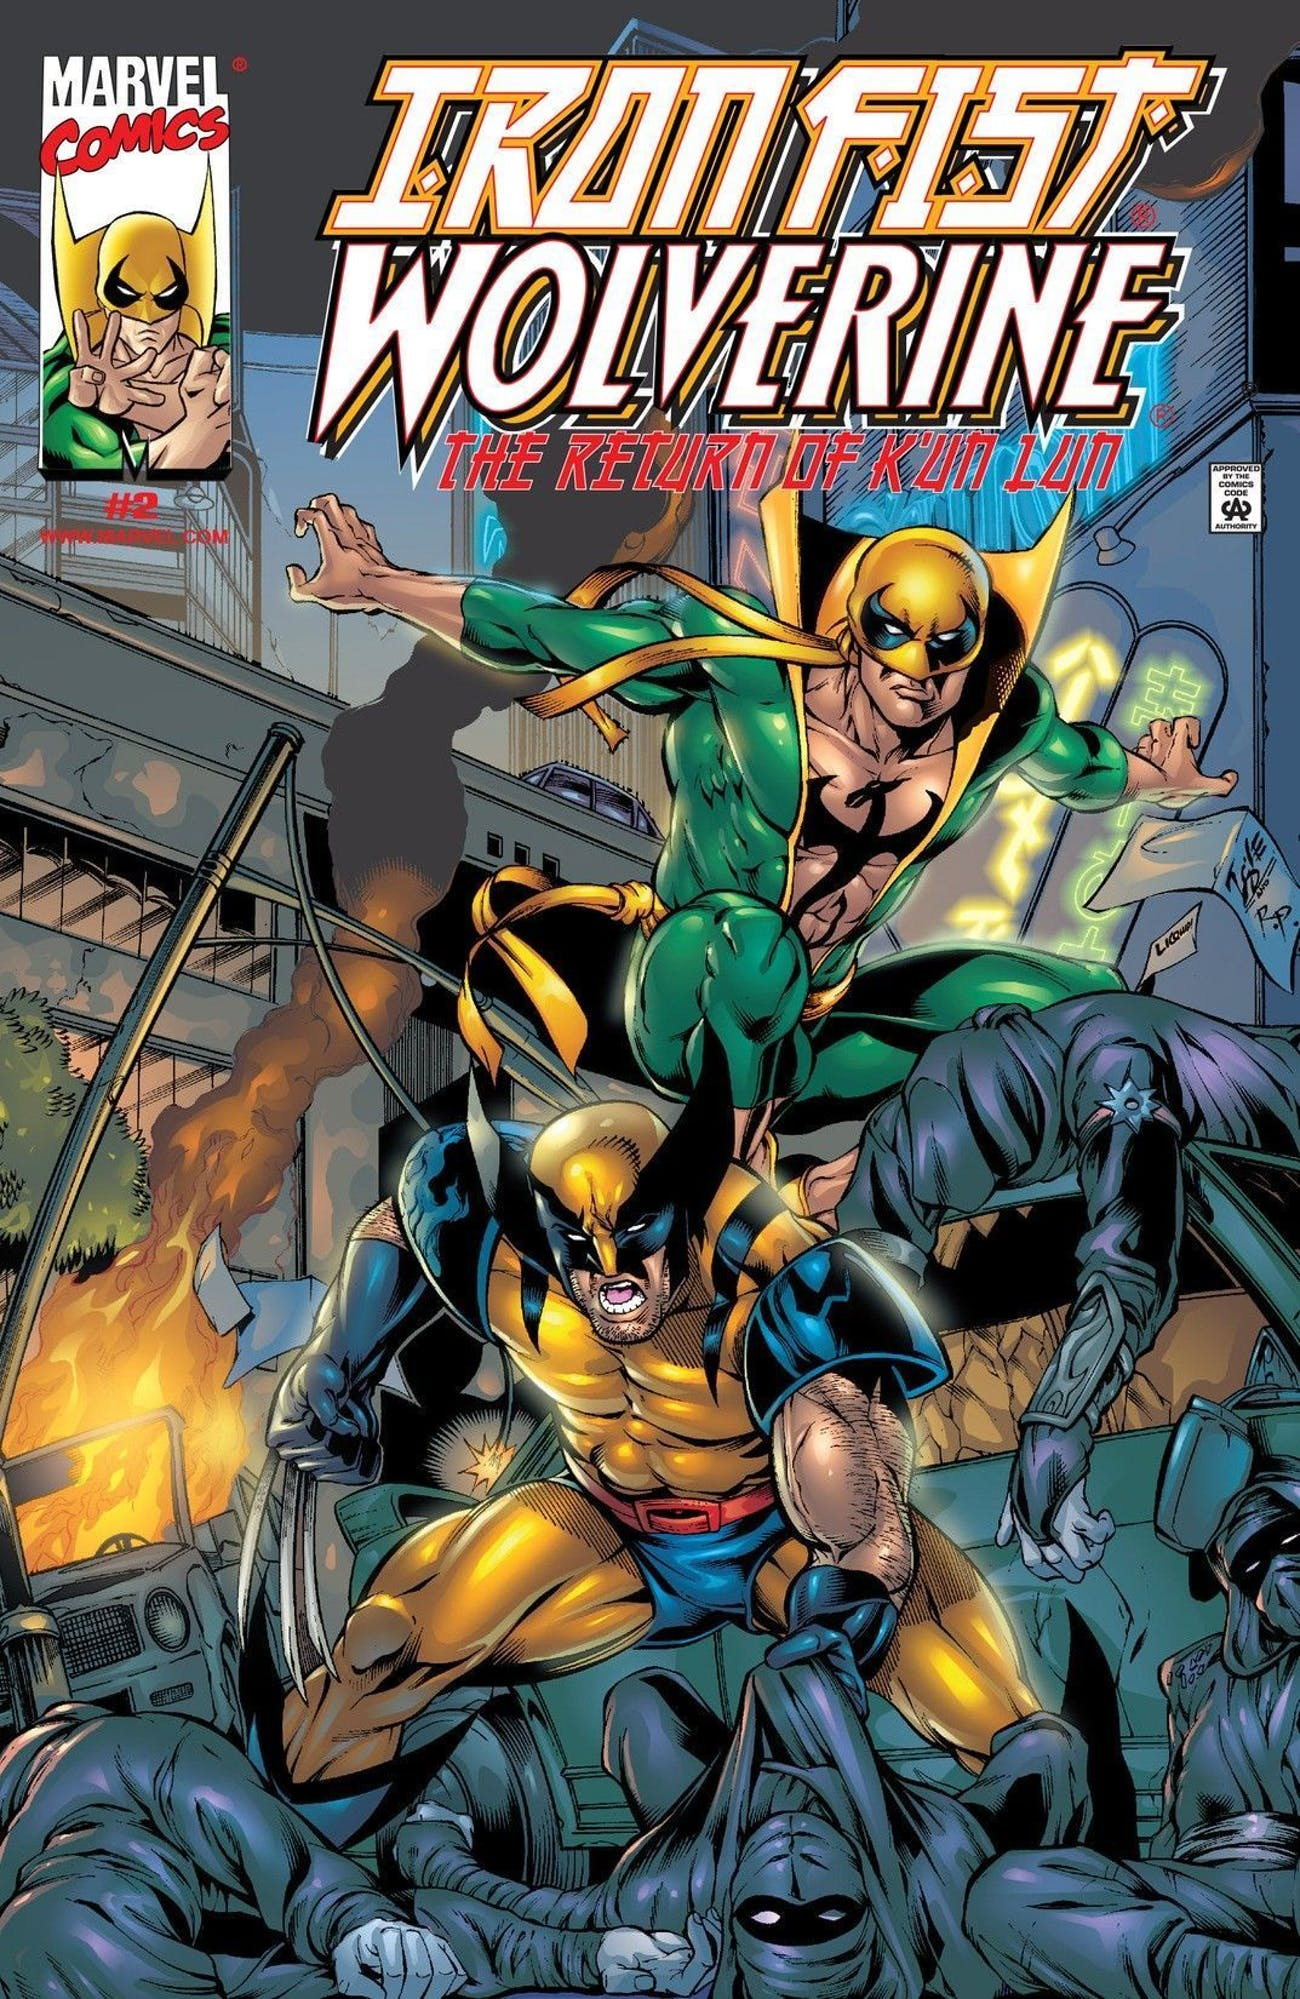 Iron Fist Marvel Wolverine